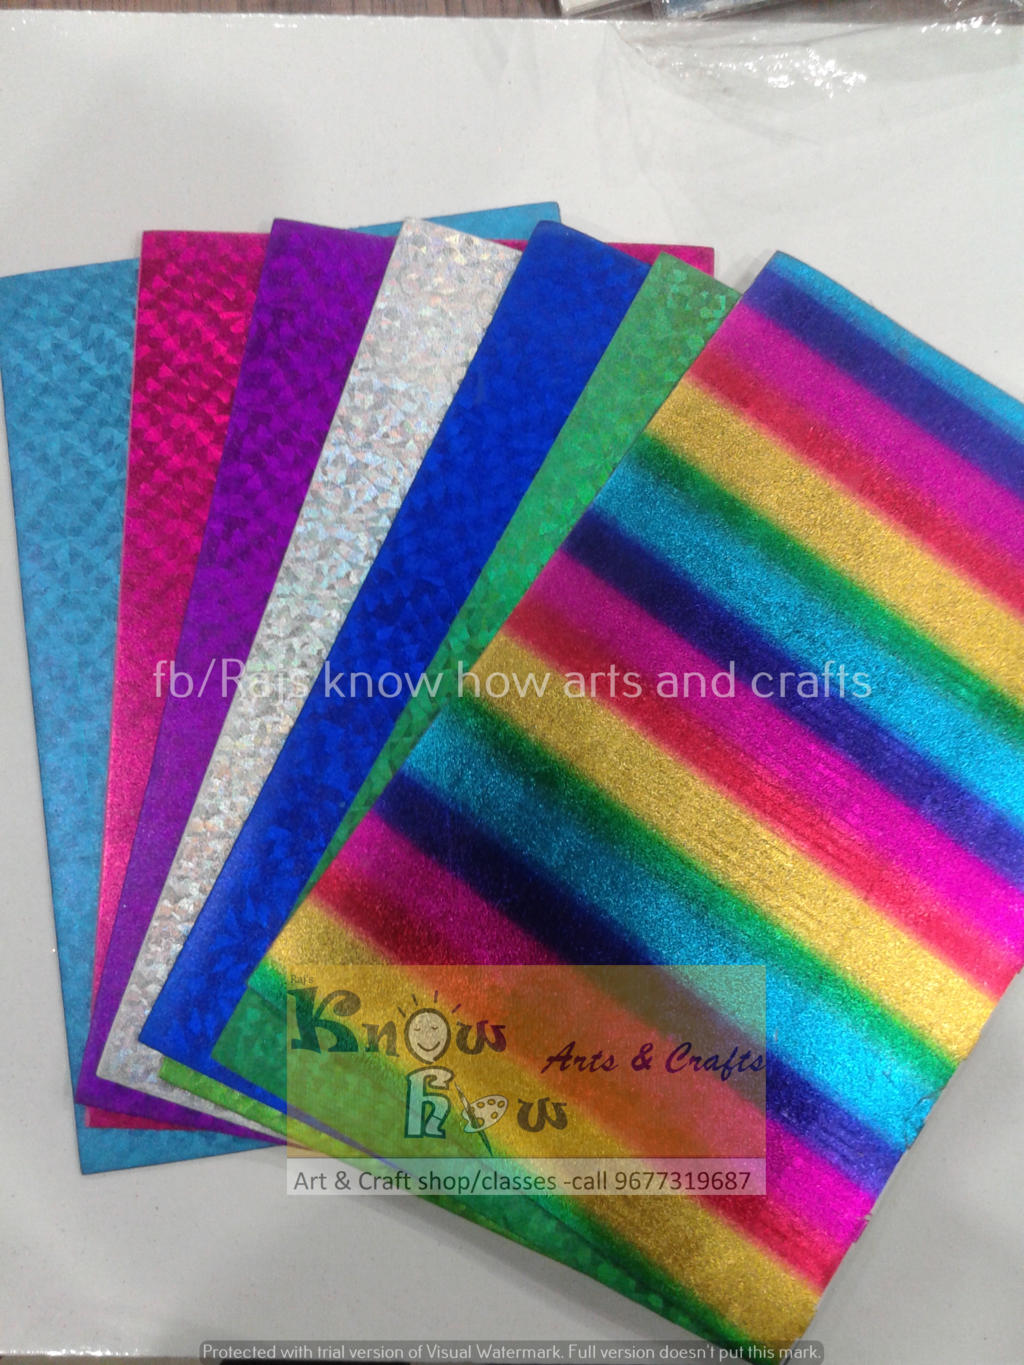 Art and craft shop in madurai foam craft items for Arts and crafts glitter